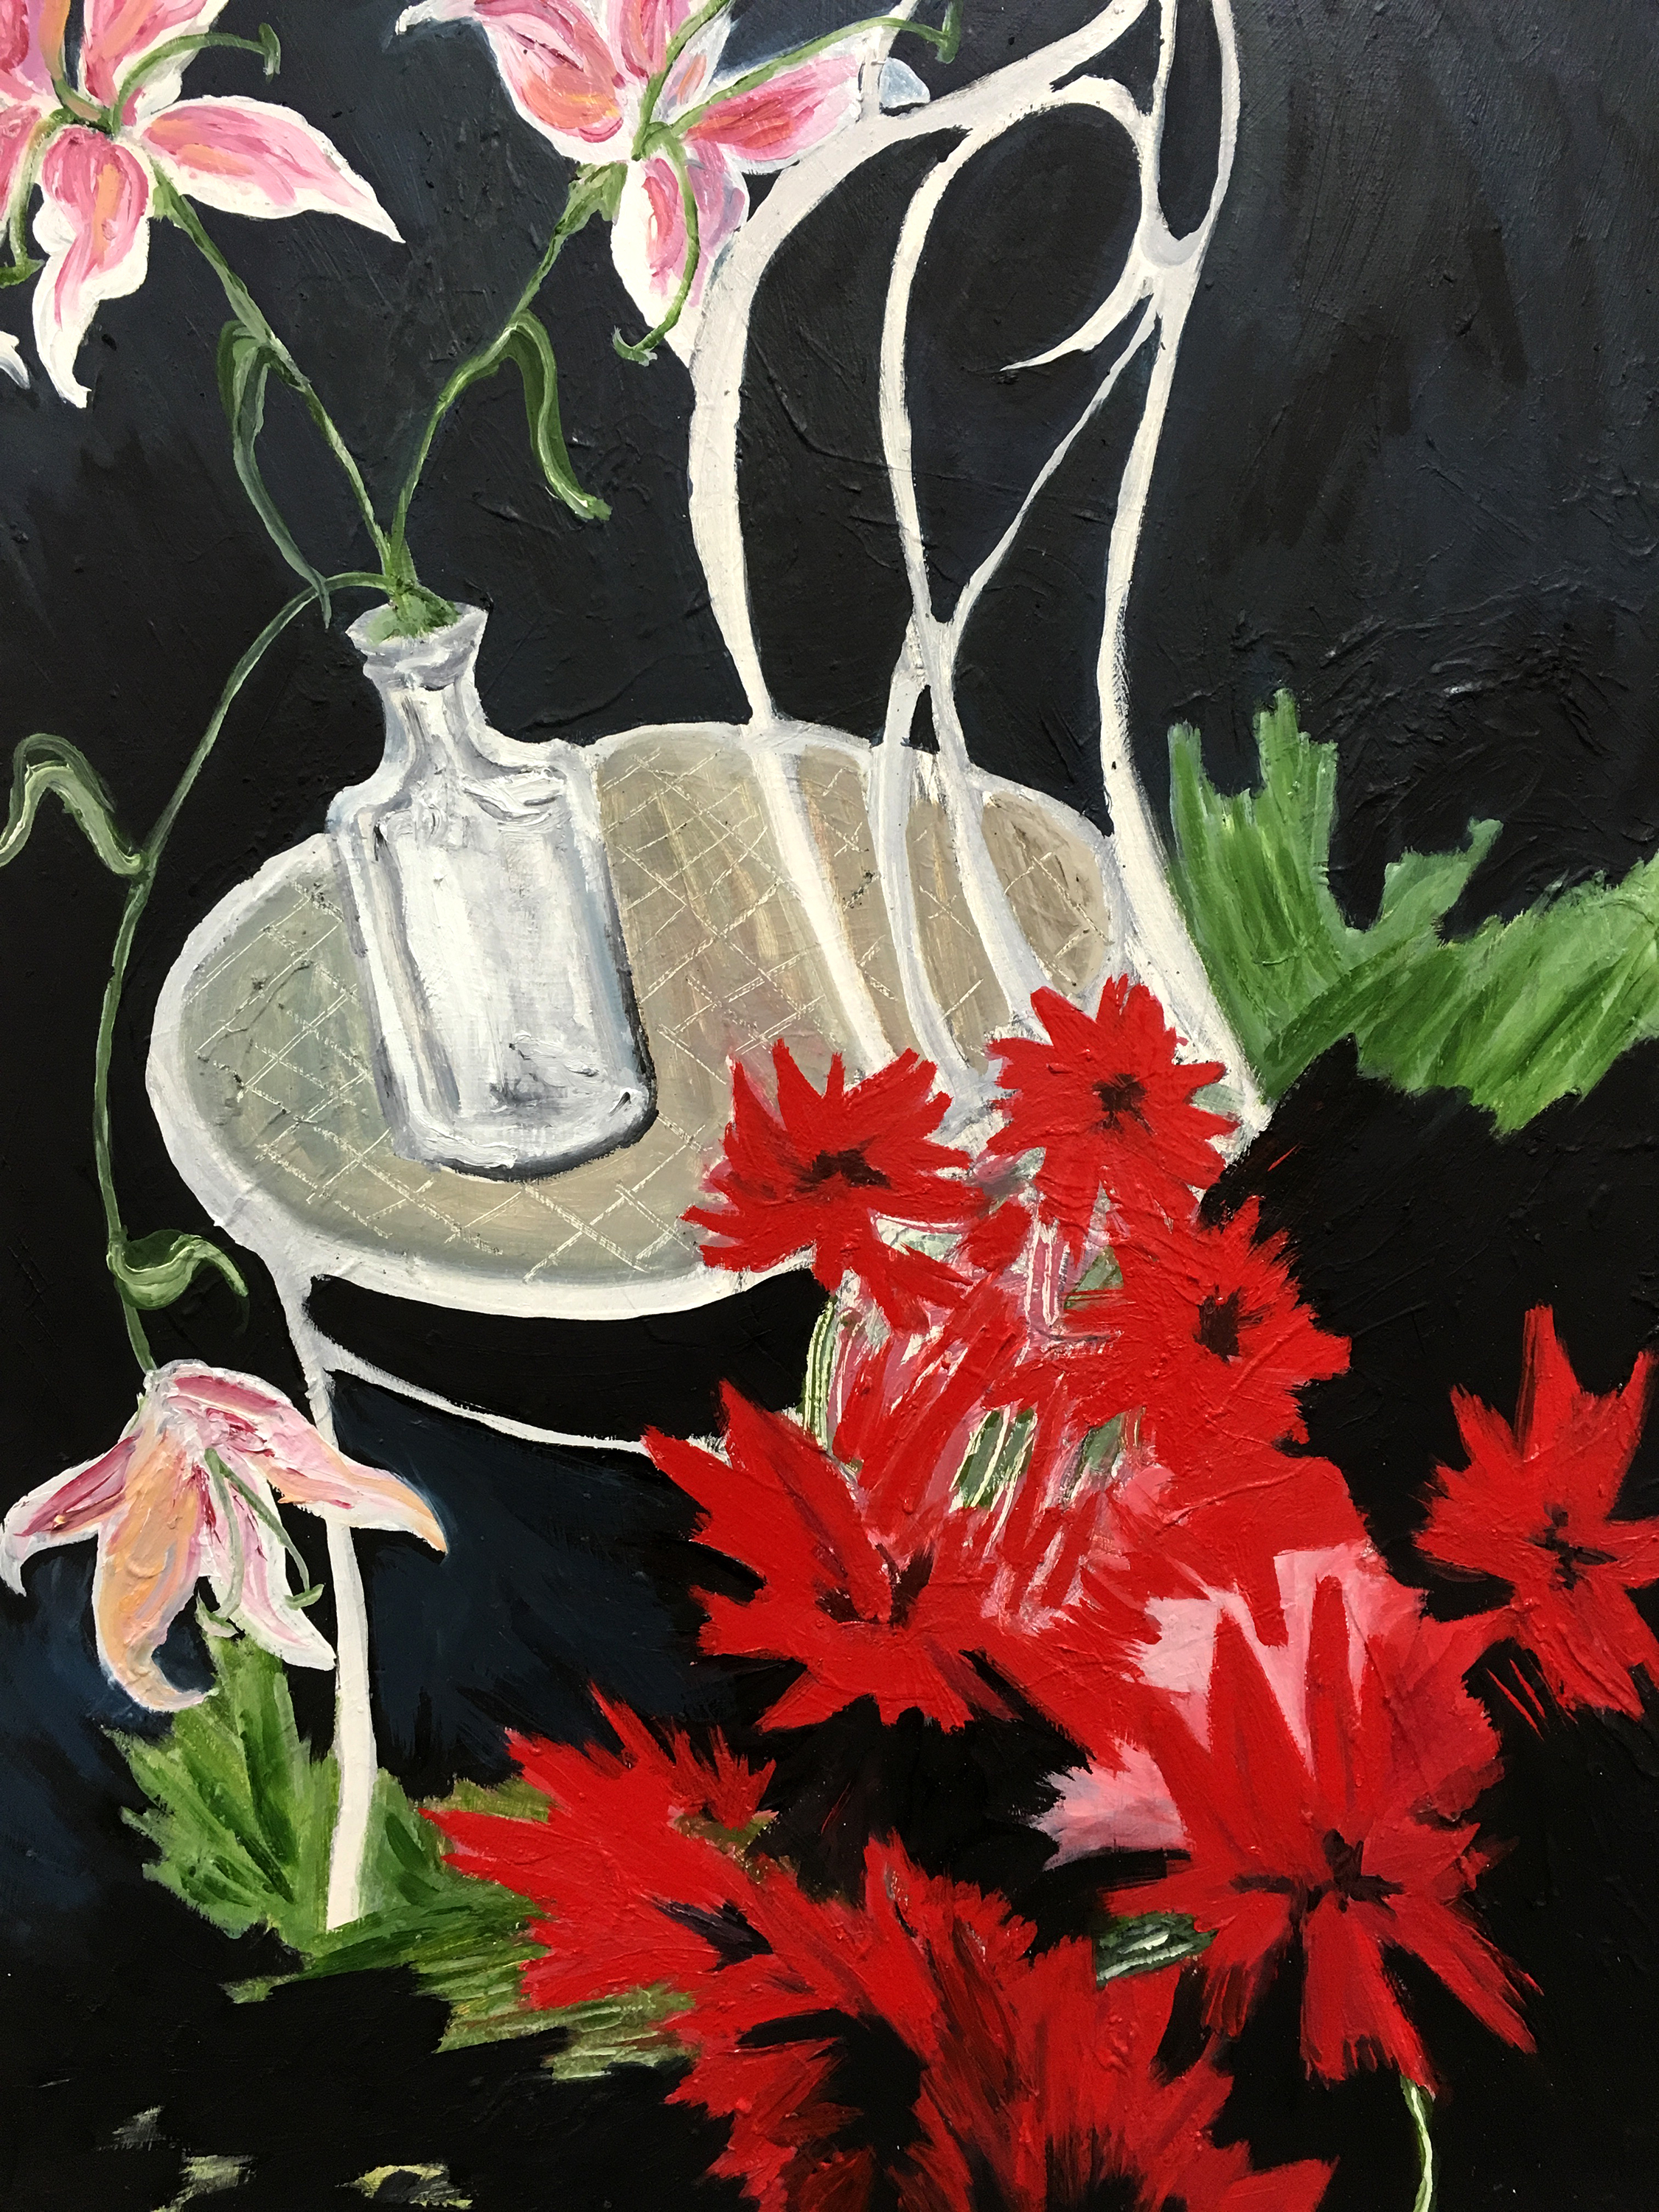 Still Life with Lilies and Red Flowers, oil on canvas, 2016